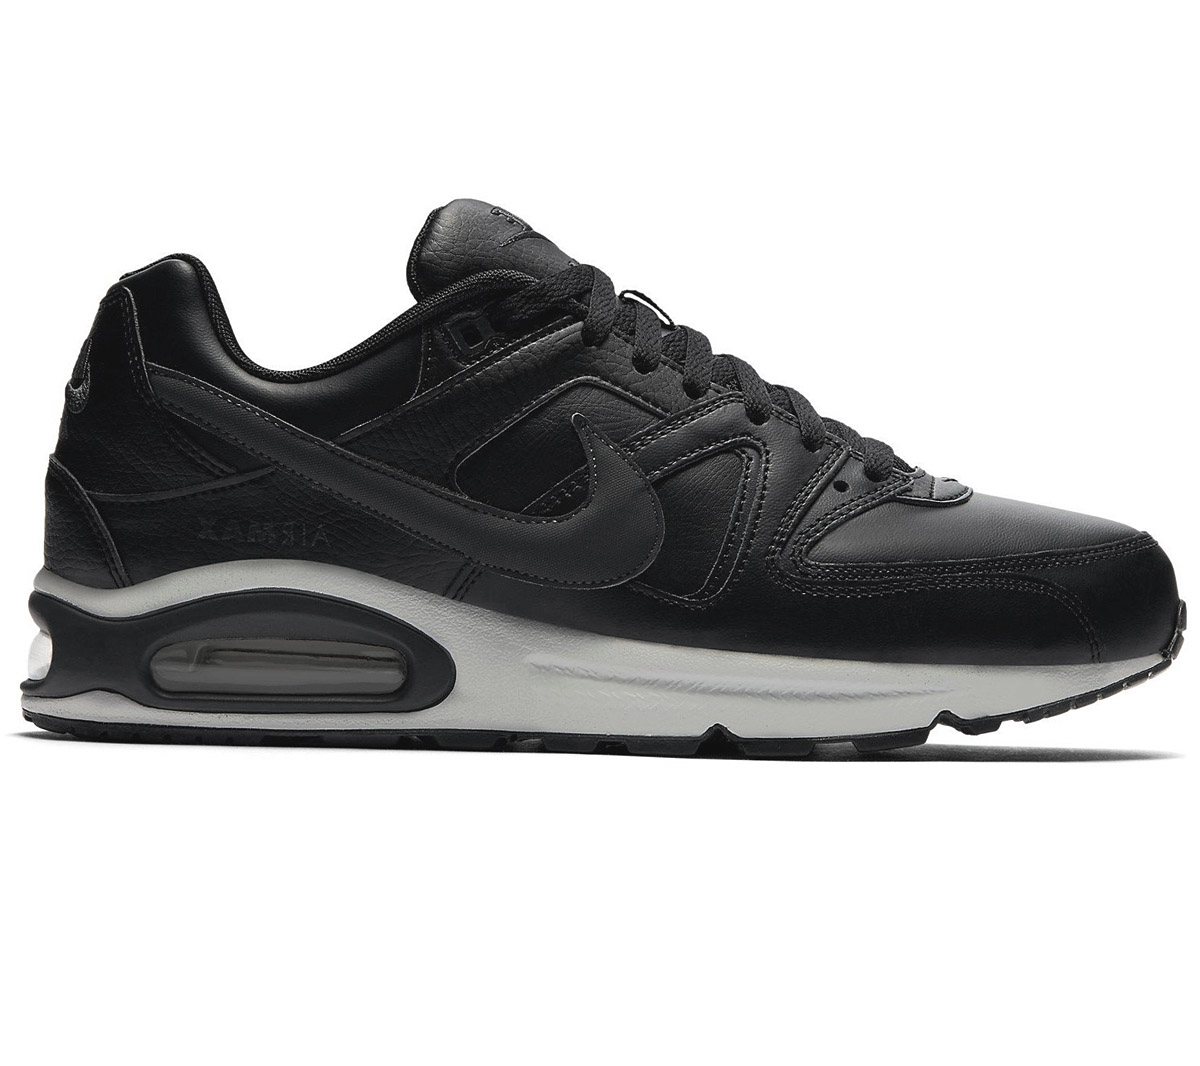 Details about NEW Nike Air Max Command Leather 749760 001 Men''s Shoes Trainers Sneakers SALE